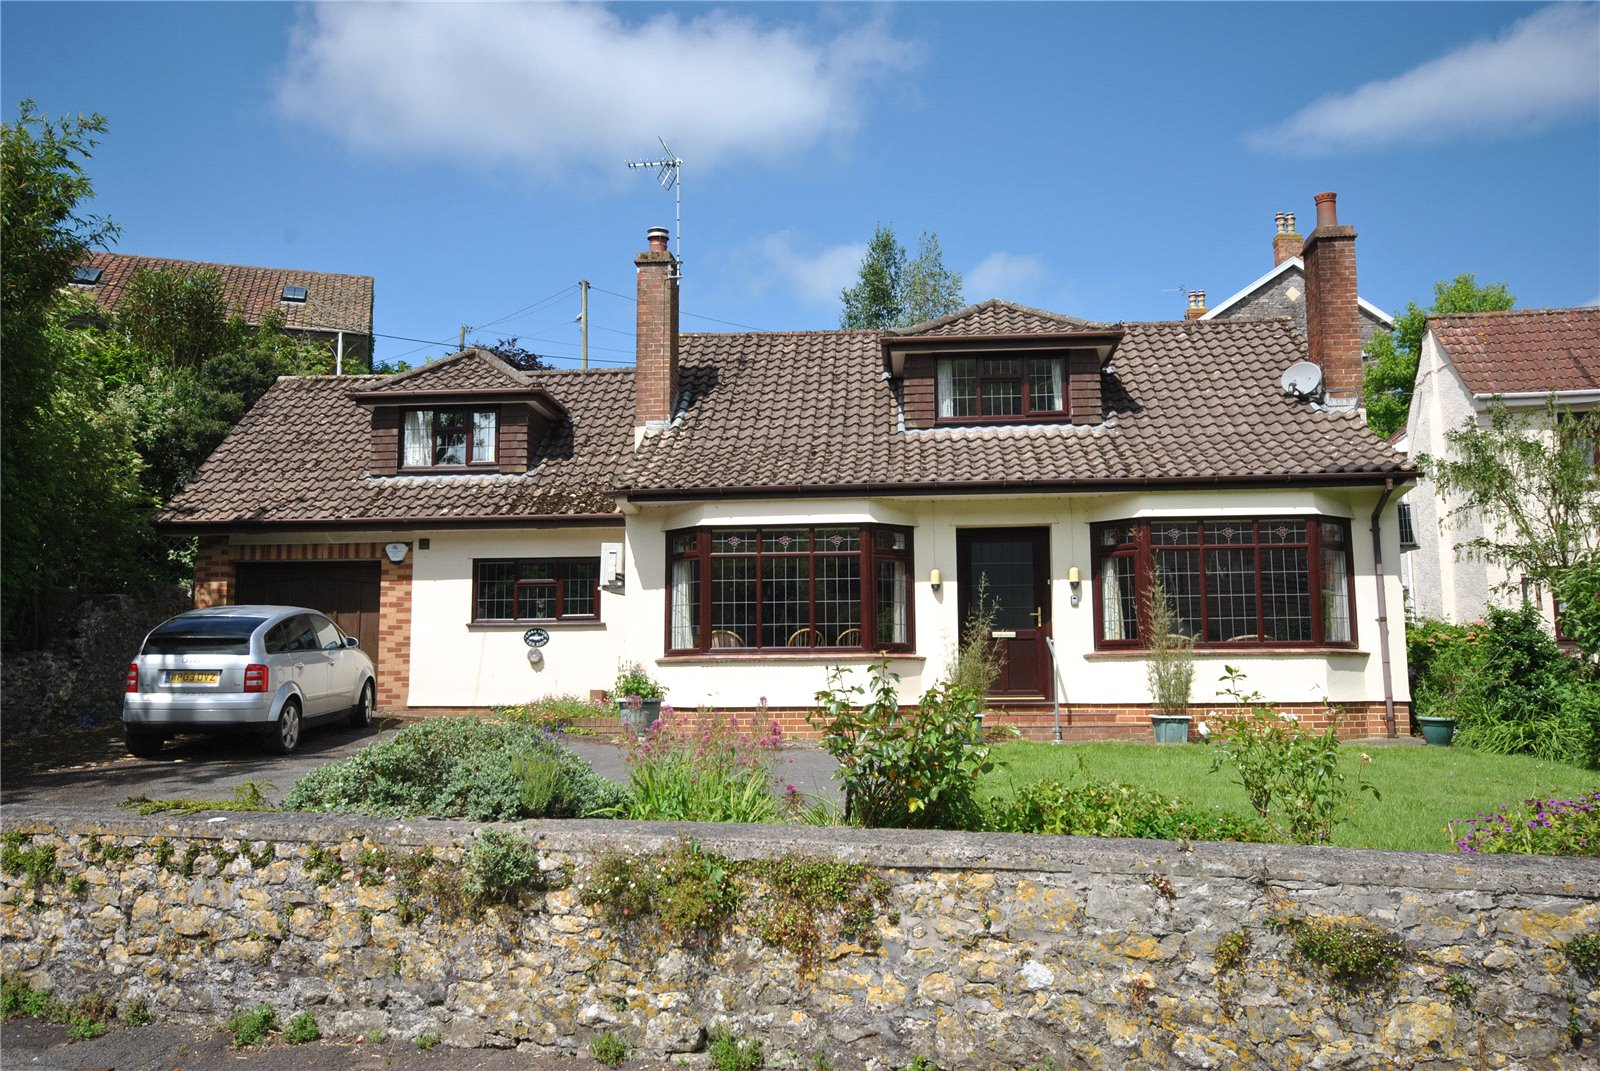 4 Bedrooms Detached House for sale in The Bays Cheddar Somerset BS27